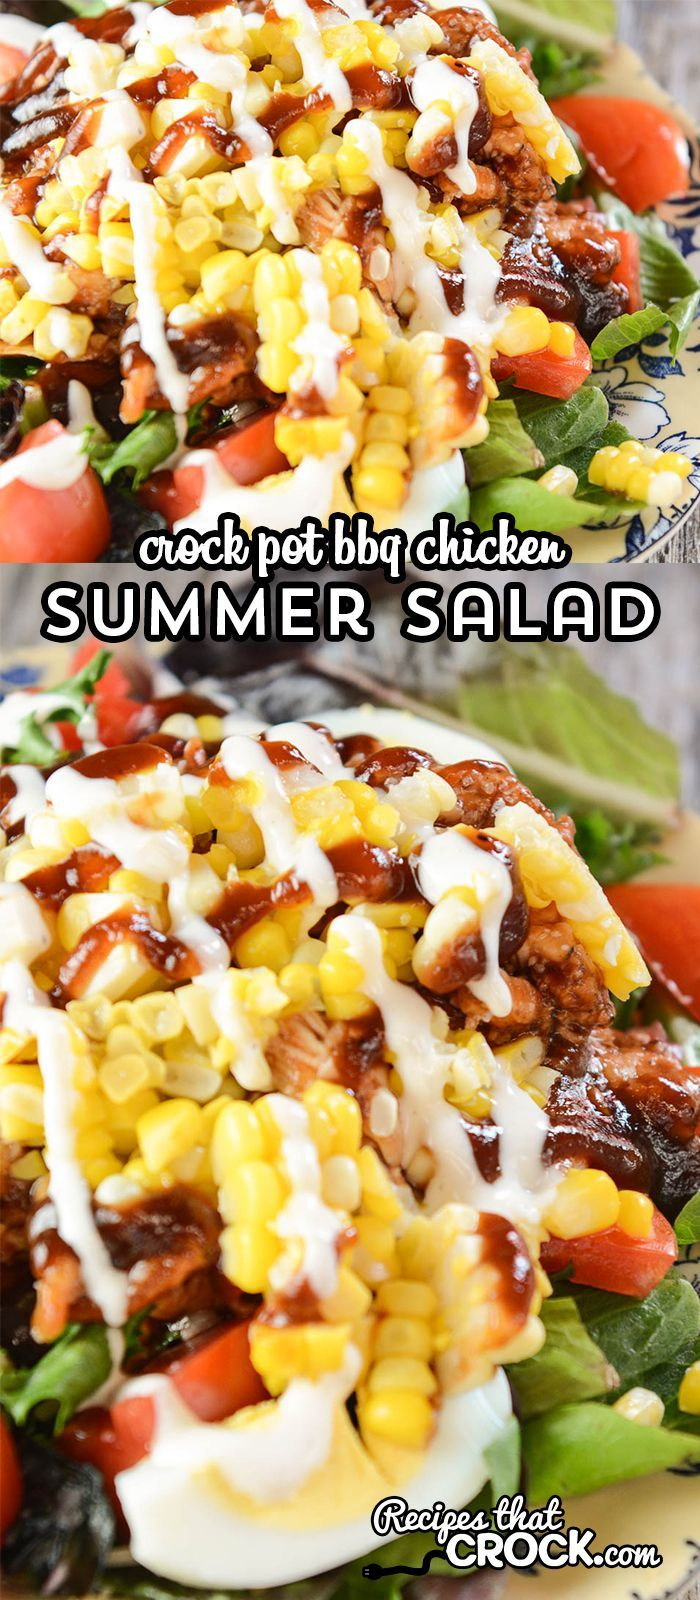 Our quick easy Crock Pot BBQ Chicken makes an incredible summer salad you will c…